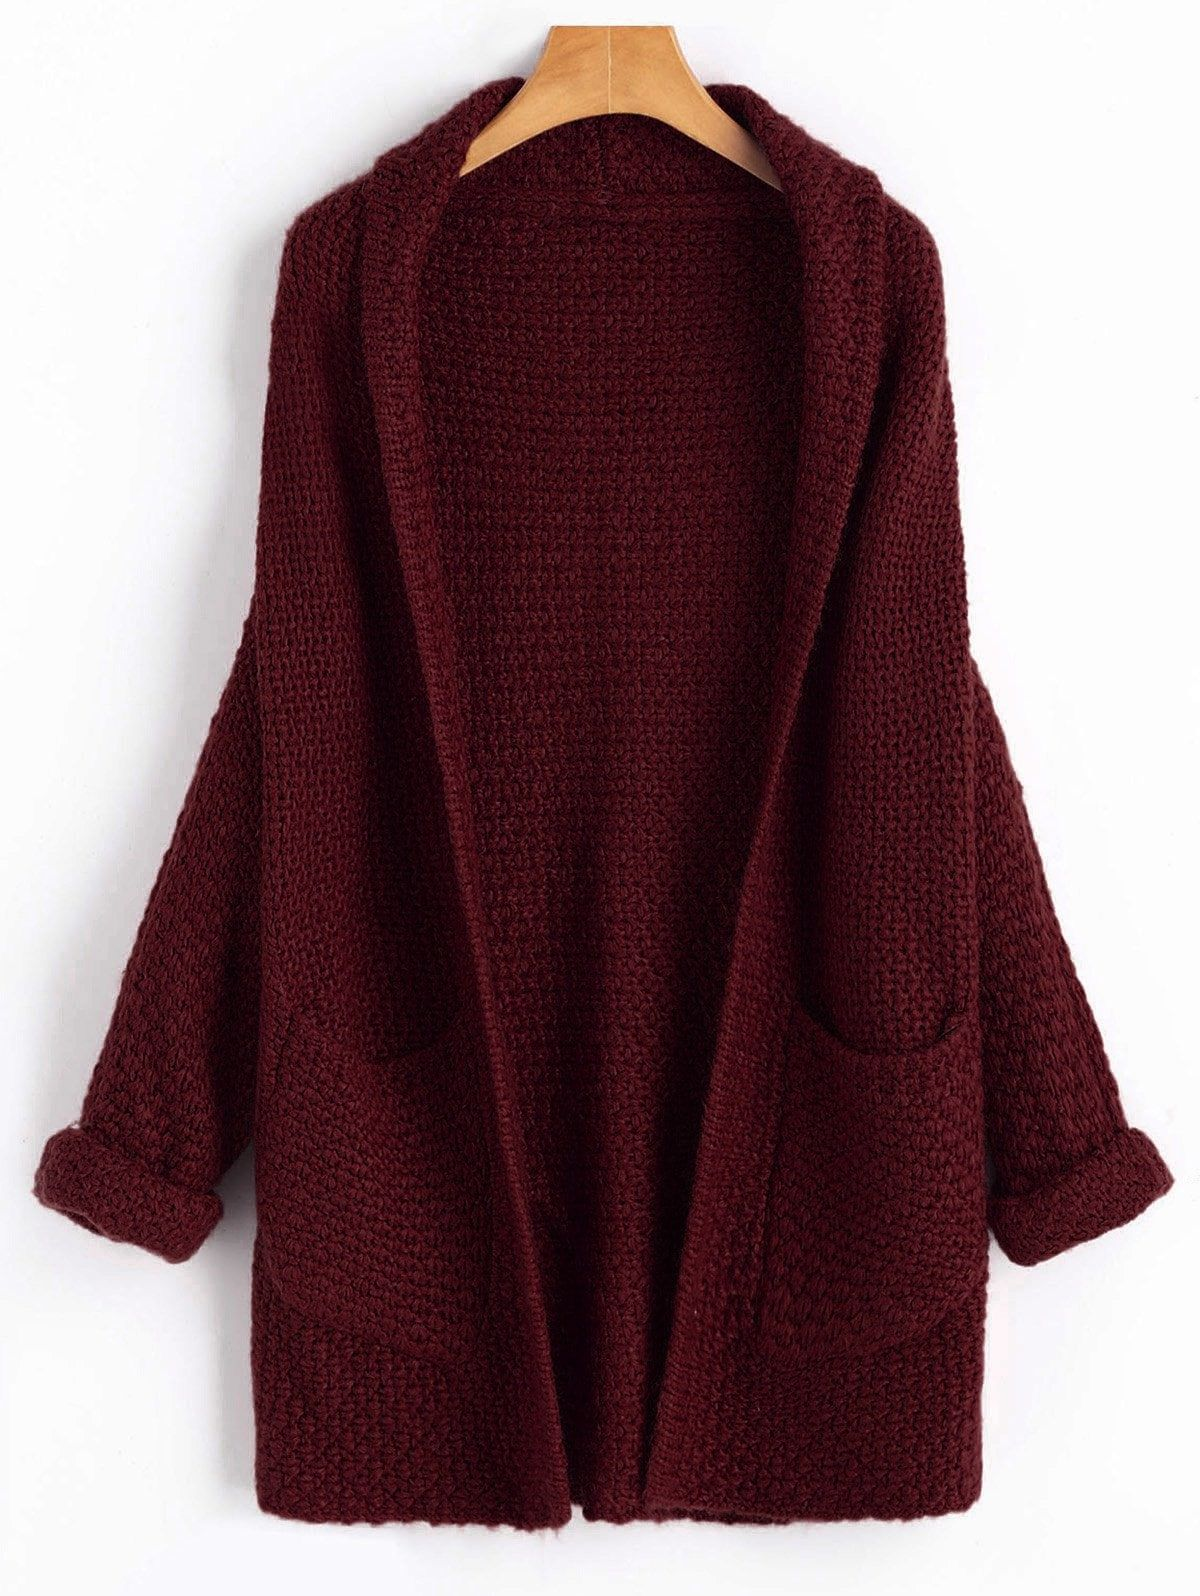 Pullover Long Lâche Tricot Chunky Poche Femme Open Front Outwear Manteau Cardigan